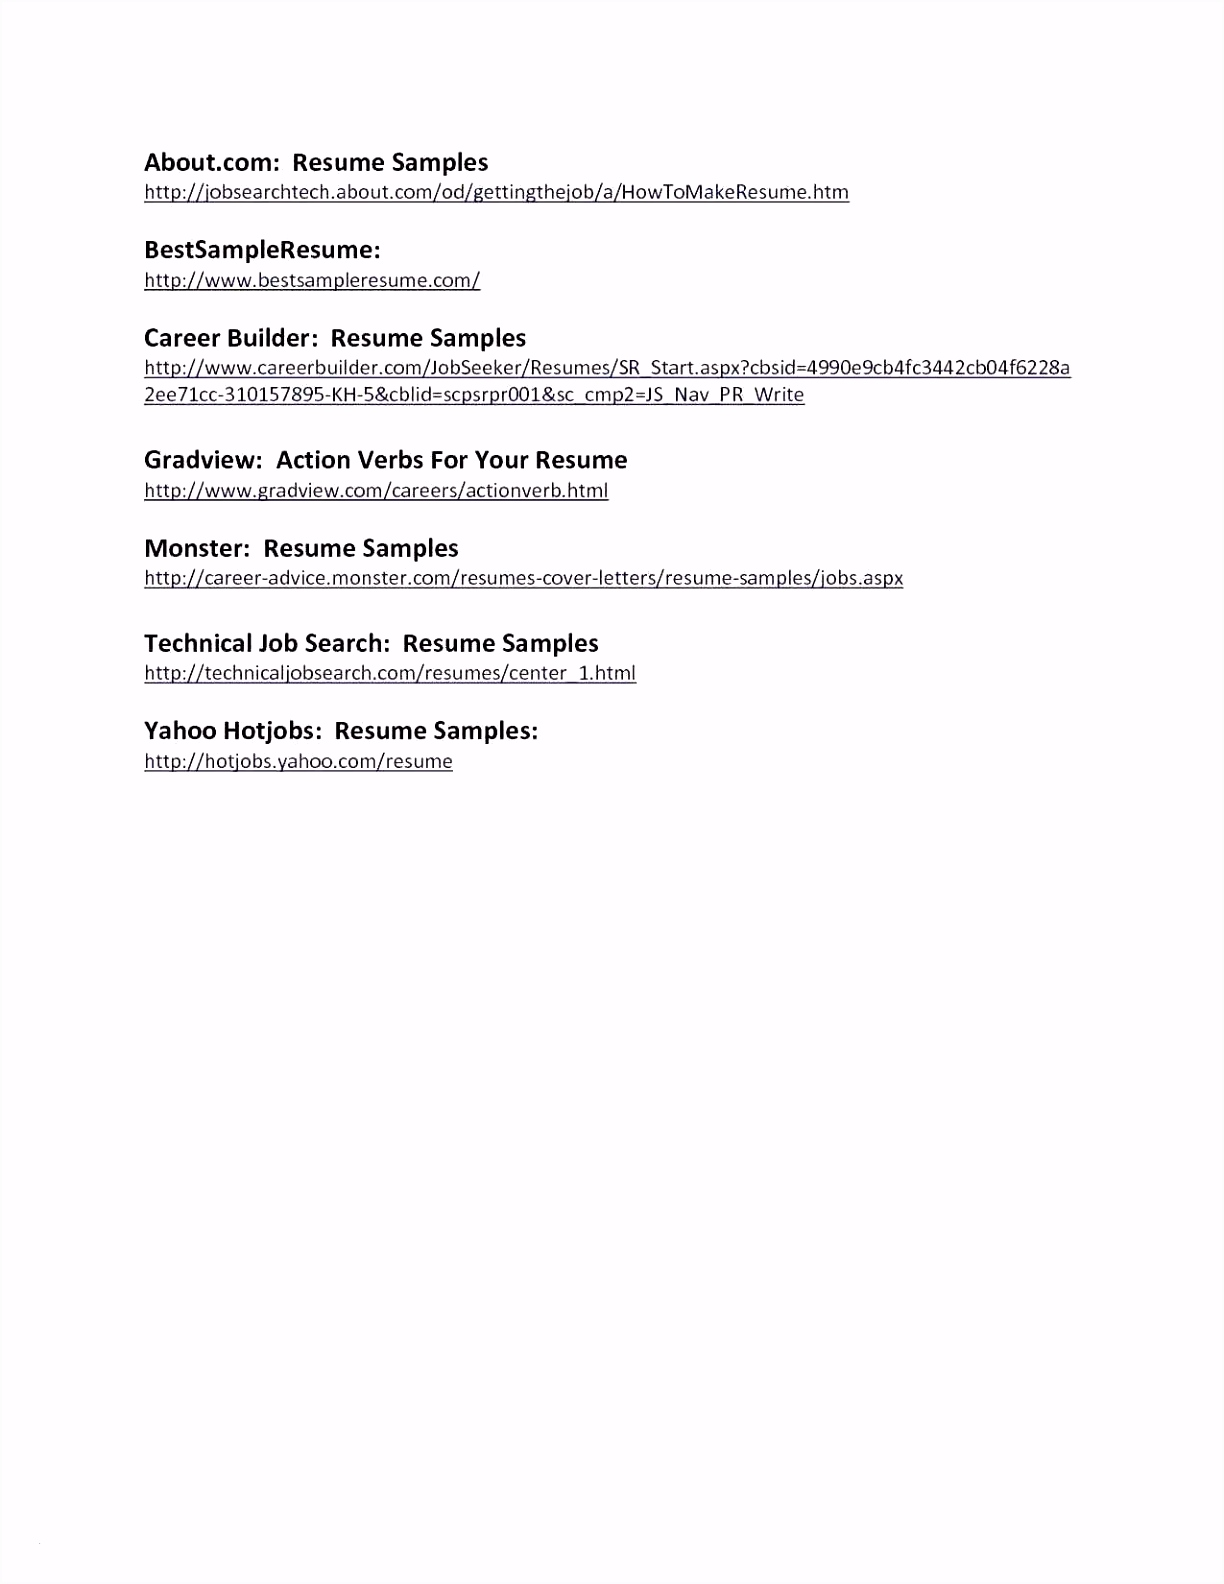 Job Fax Cover Letter Best Resume Services Los Angeles From